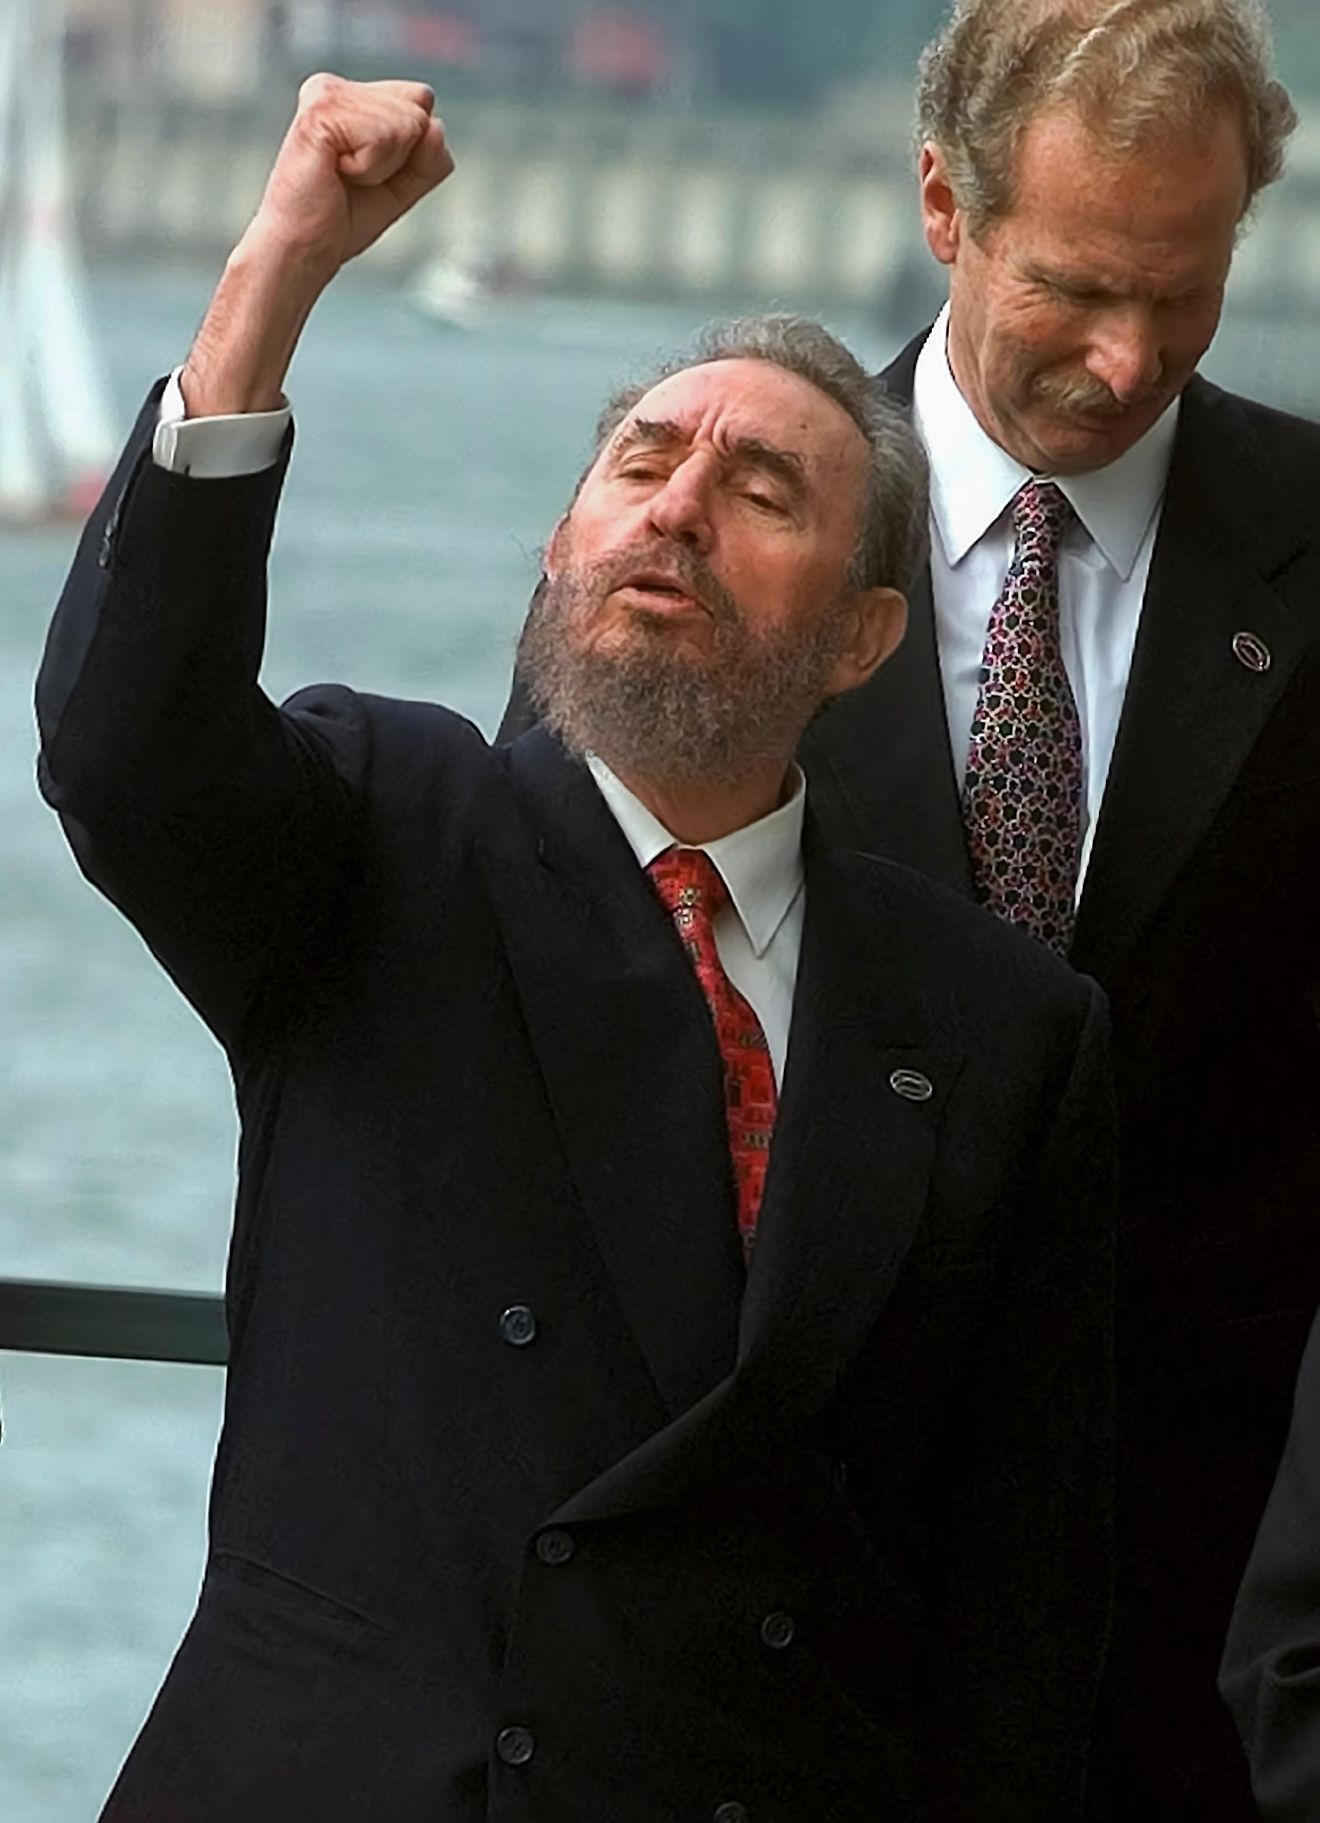 In this Sunday, October 18, 1998 file photo, Cuban leader Fidel Castro, left, shouts a slogan as he raises his fist during the VIII Ibero-American summit group picture in Oporto. (AP Photo/Domenico Stinellis)